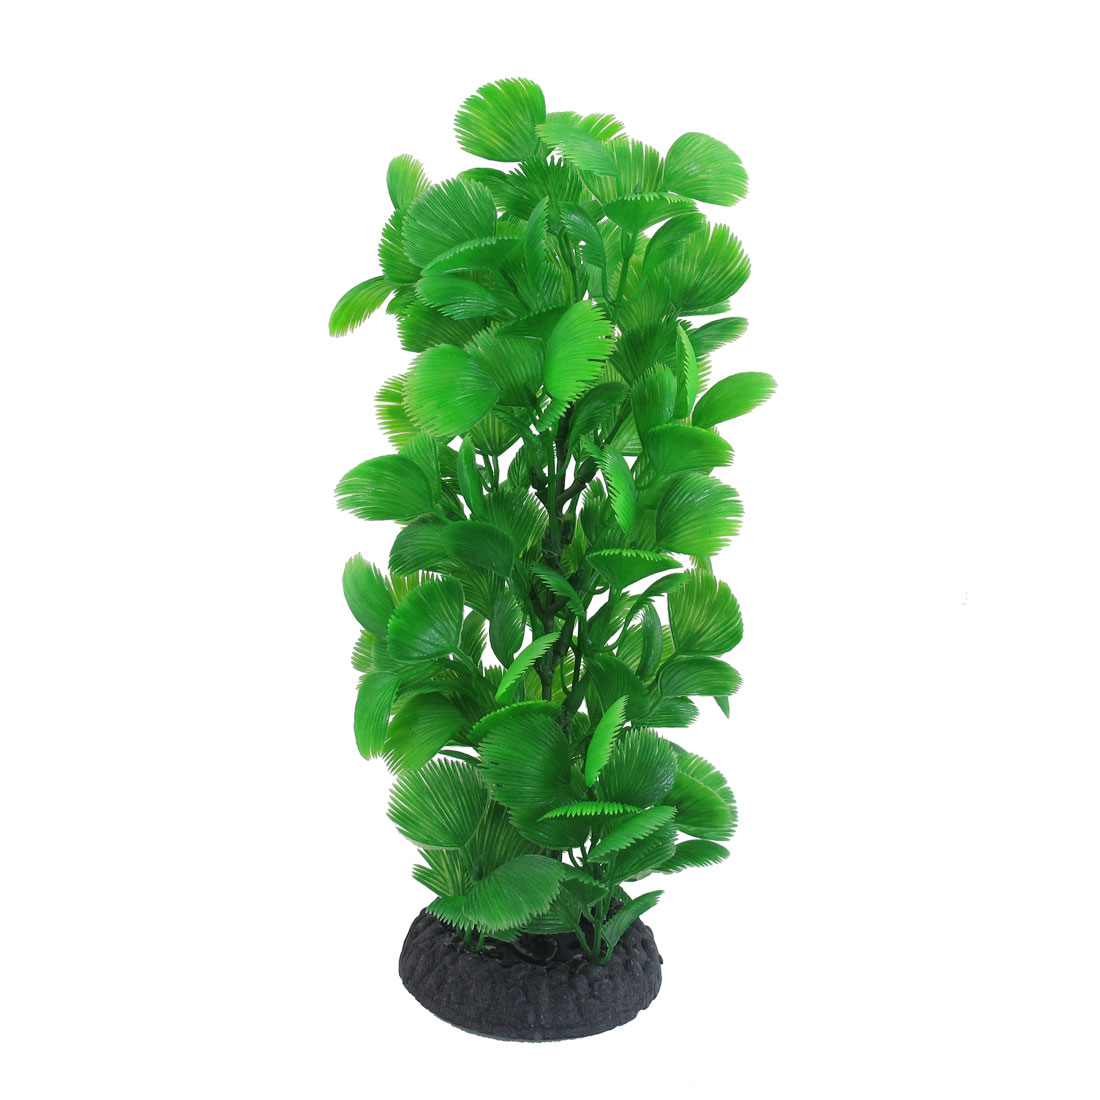 "Green Plastic 9.3"" Artificial Water Plant Decoration for Aquarium Fish Tank"